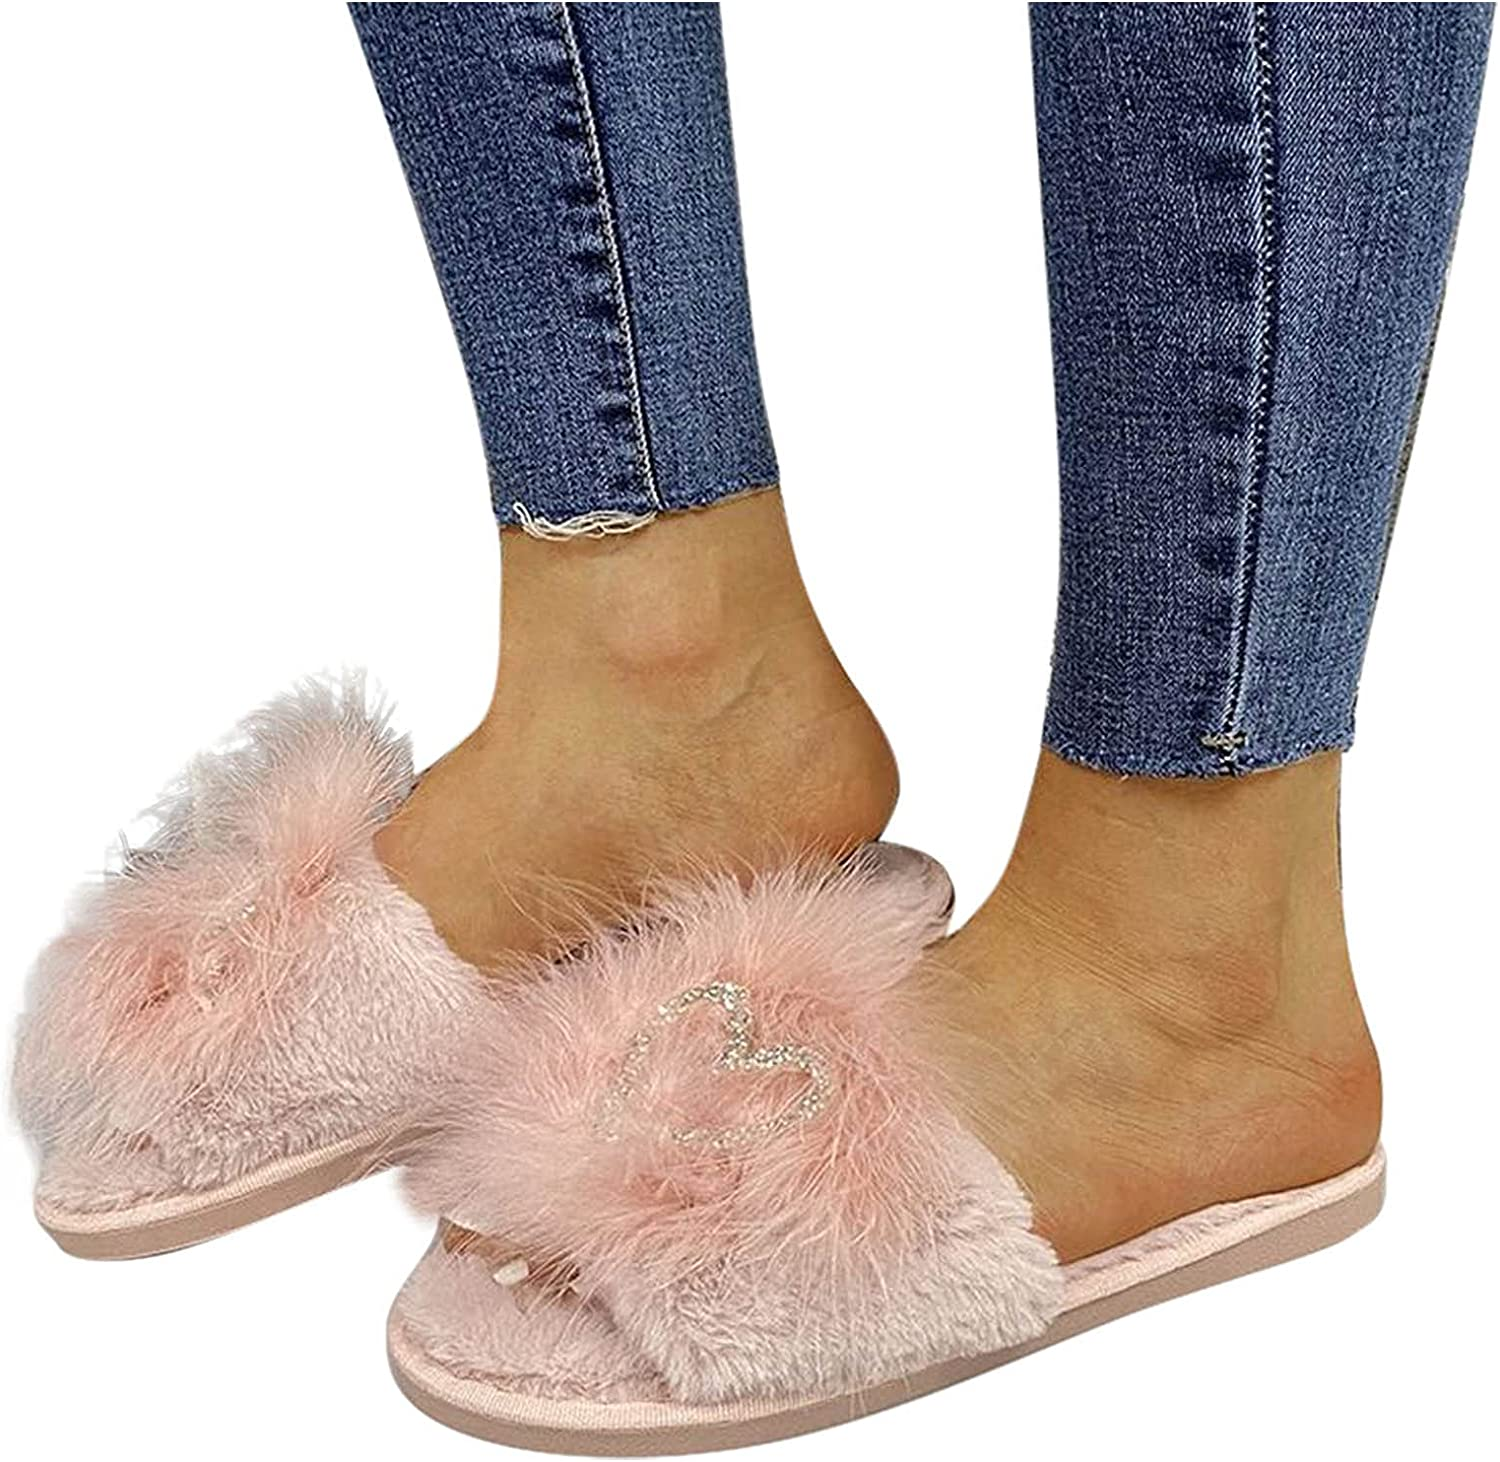 Hunauoo Slippers for Popularity Women Warm Rhinestone Thick Cotton Max 65% OFF